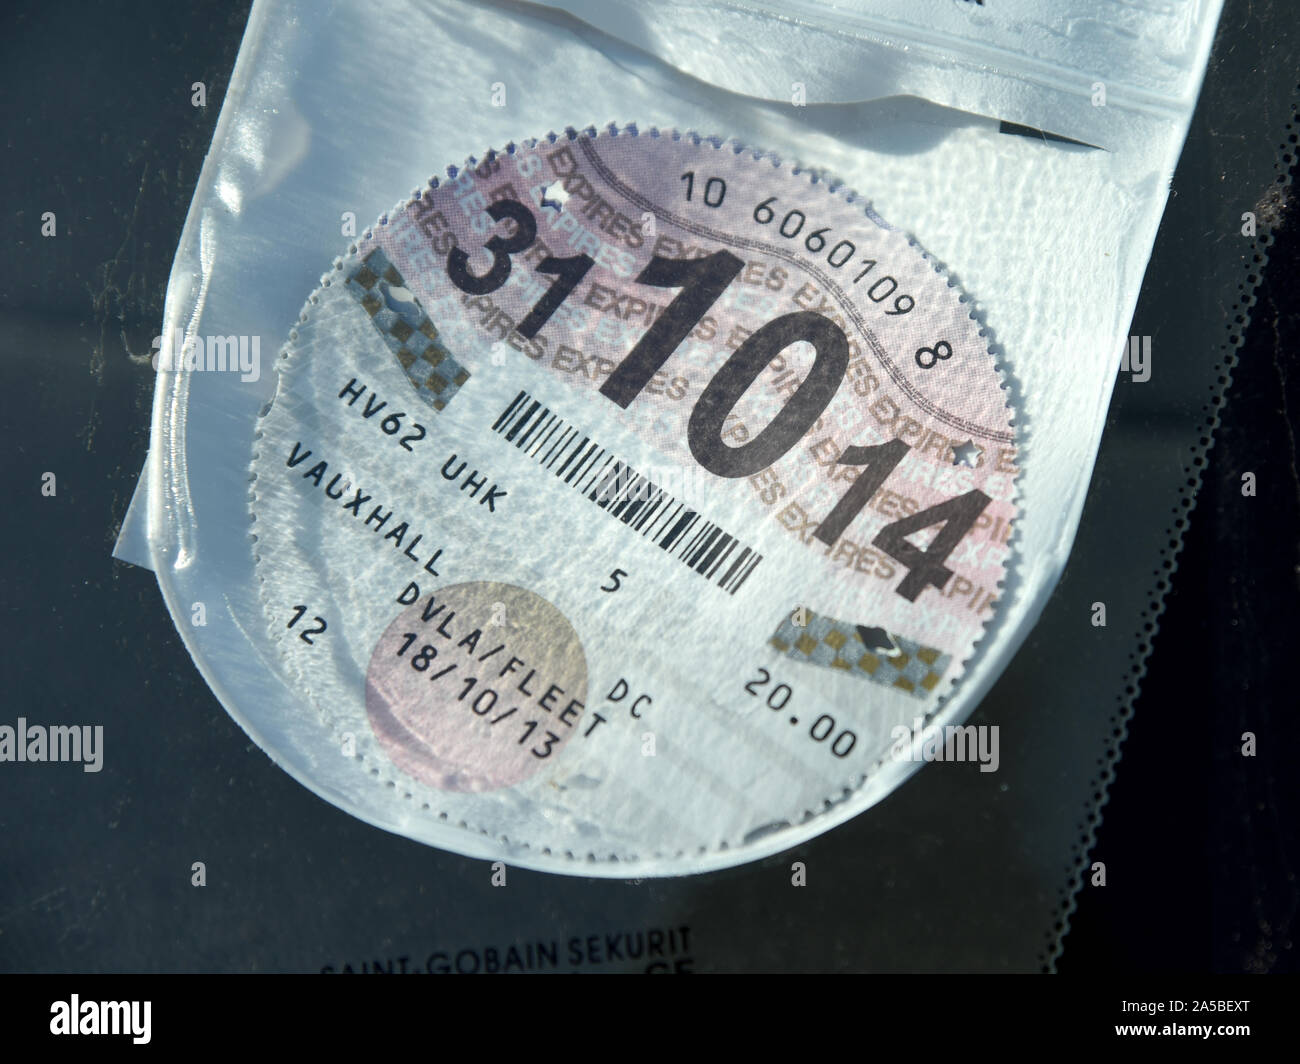 Road Tax disc, old style road tax disc Stock Photo